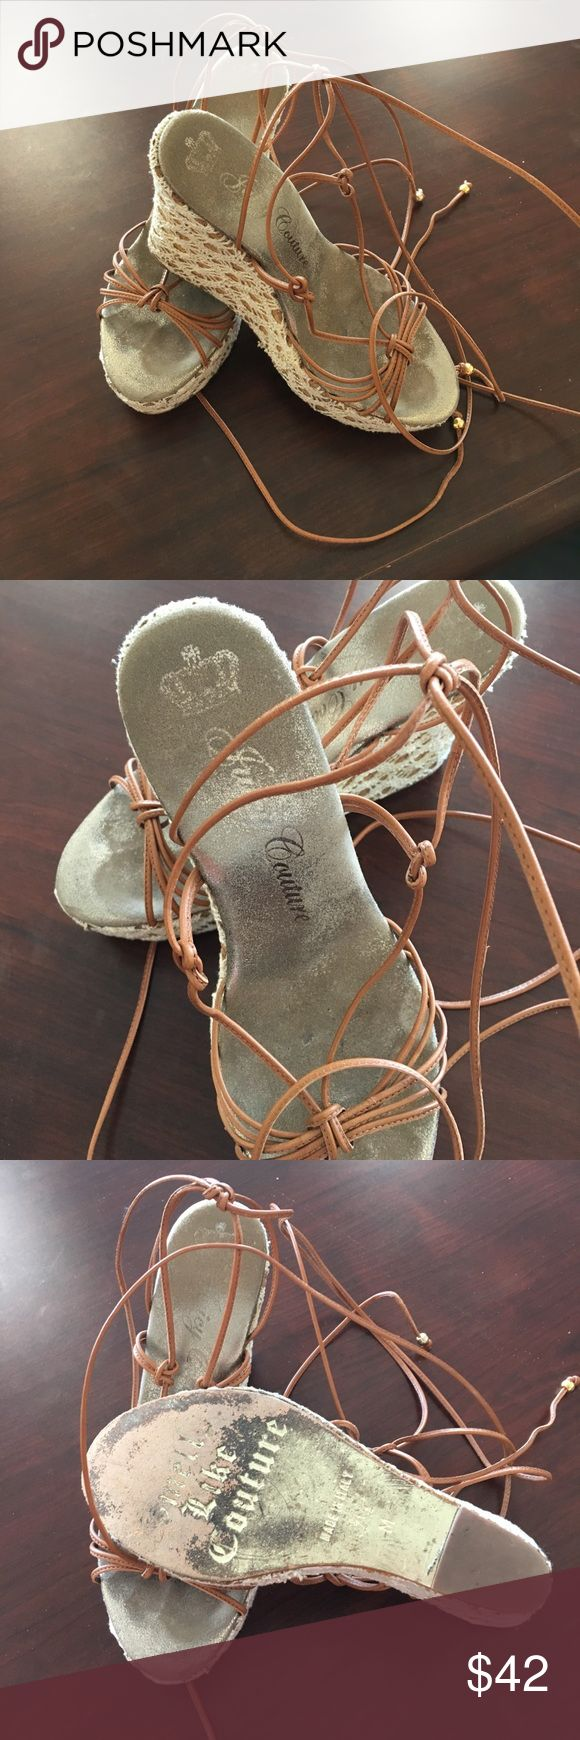 Sandals by Juicy Couture Shoes by Juicy Couture used but in a very good condition no box Juicy Couture Shoes Sandals